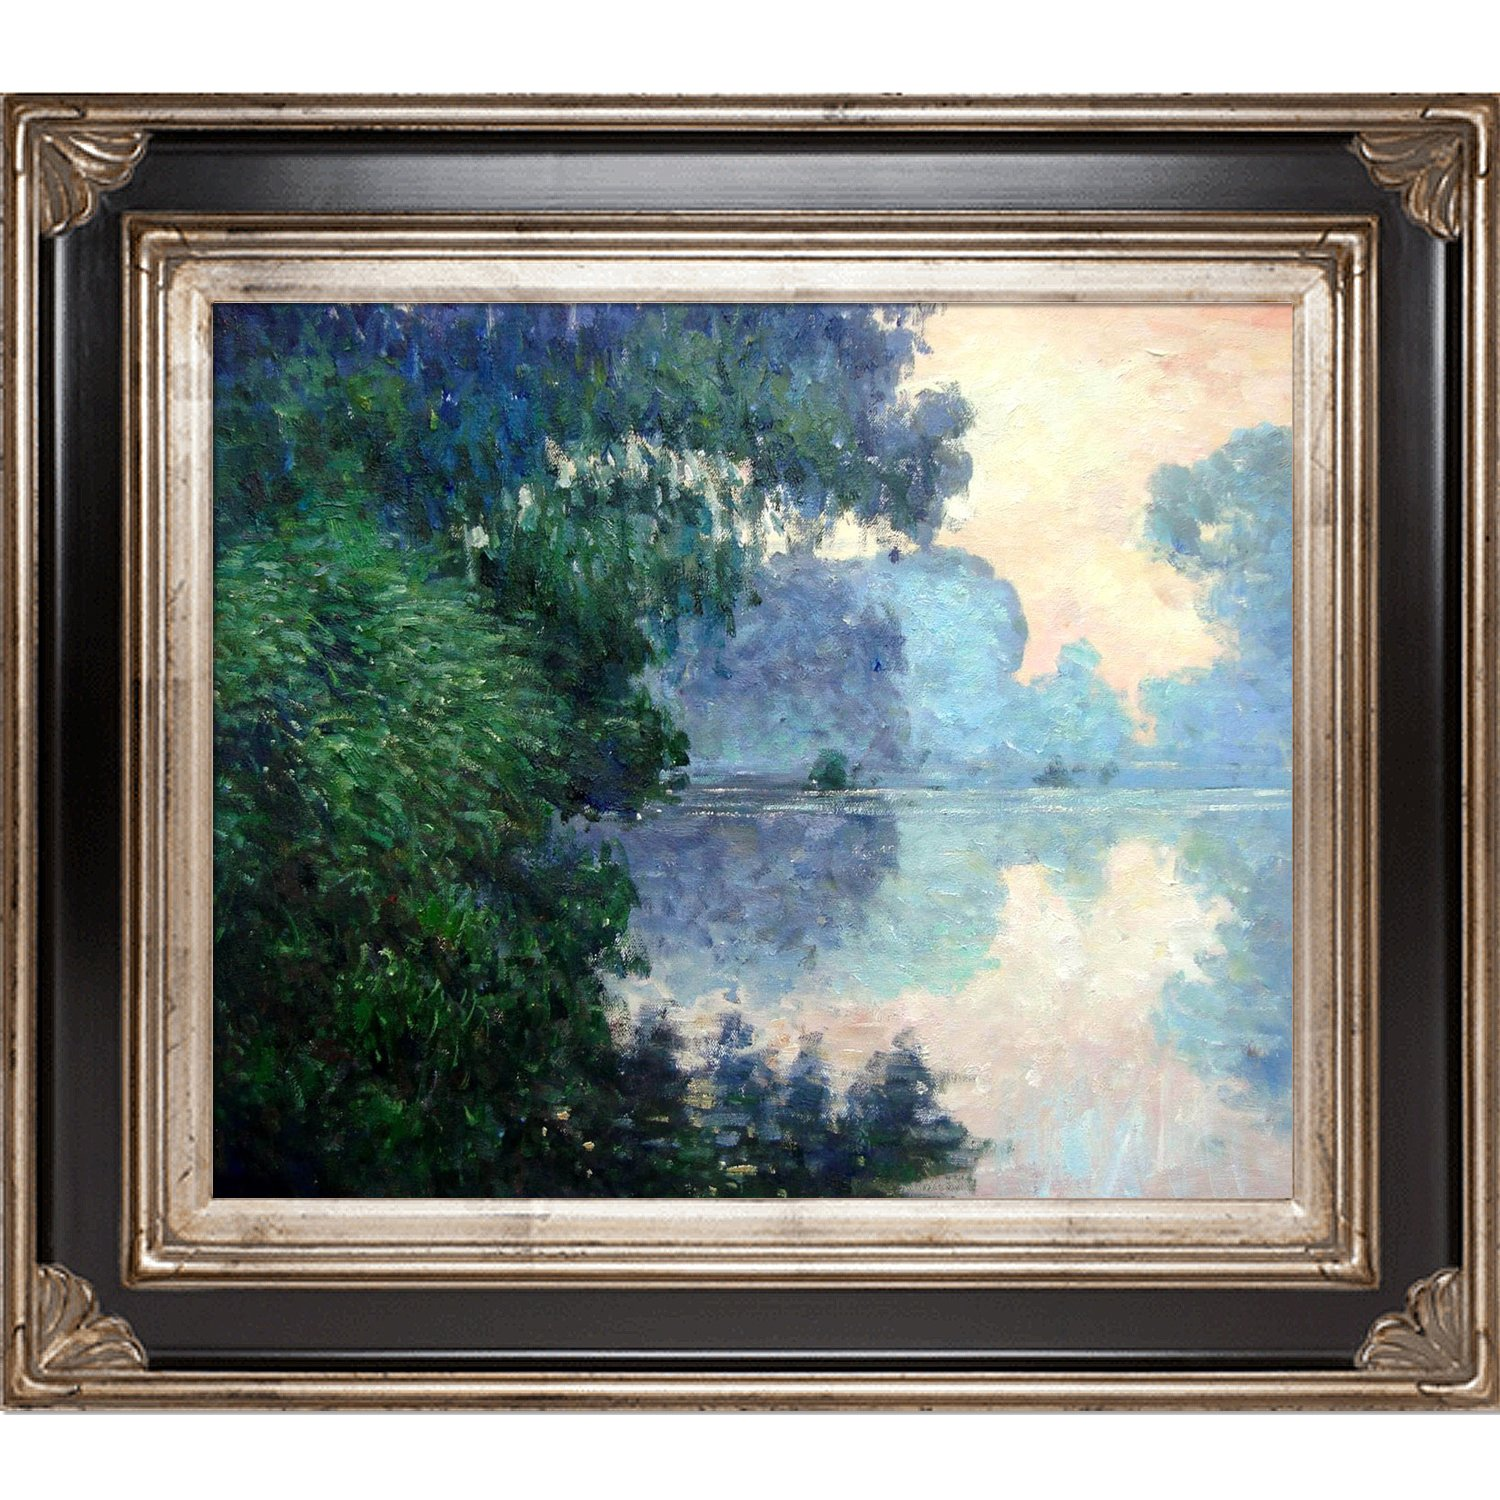 overstockArt Morning on The Seine Near Giverny by Monet with Corinthian Silver Frame Black and Silver Finish